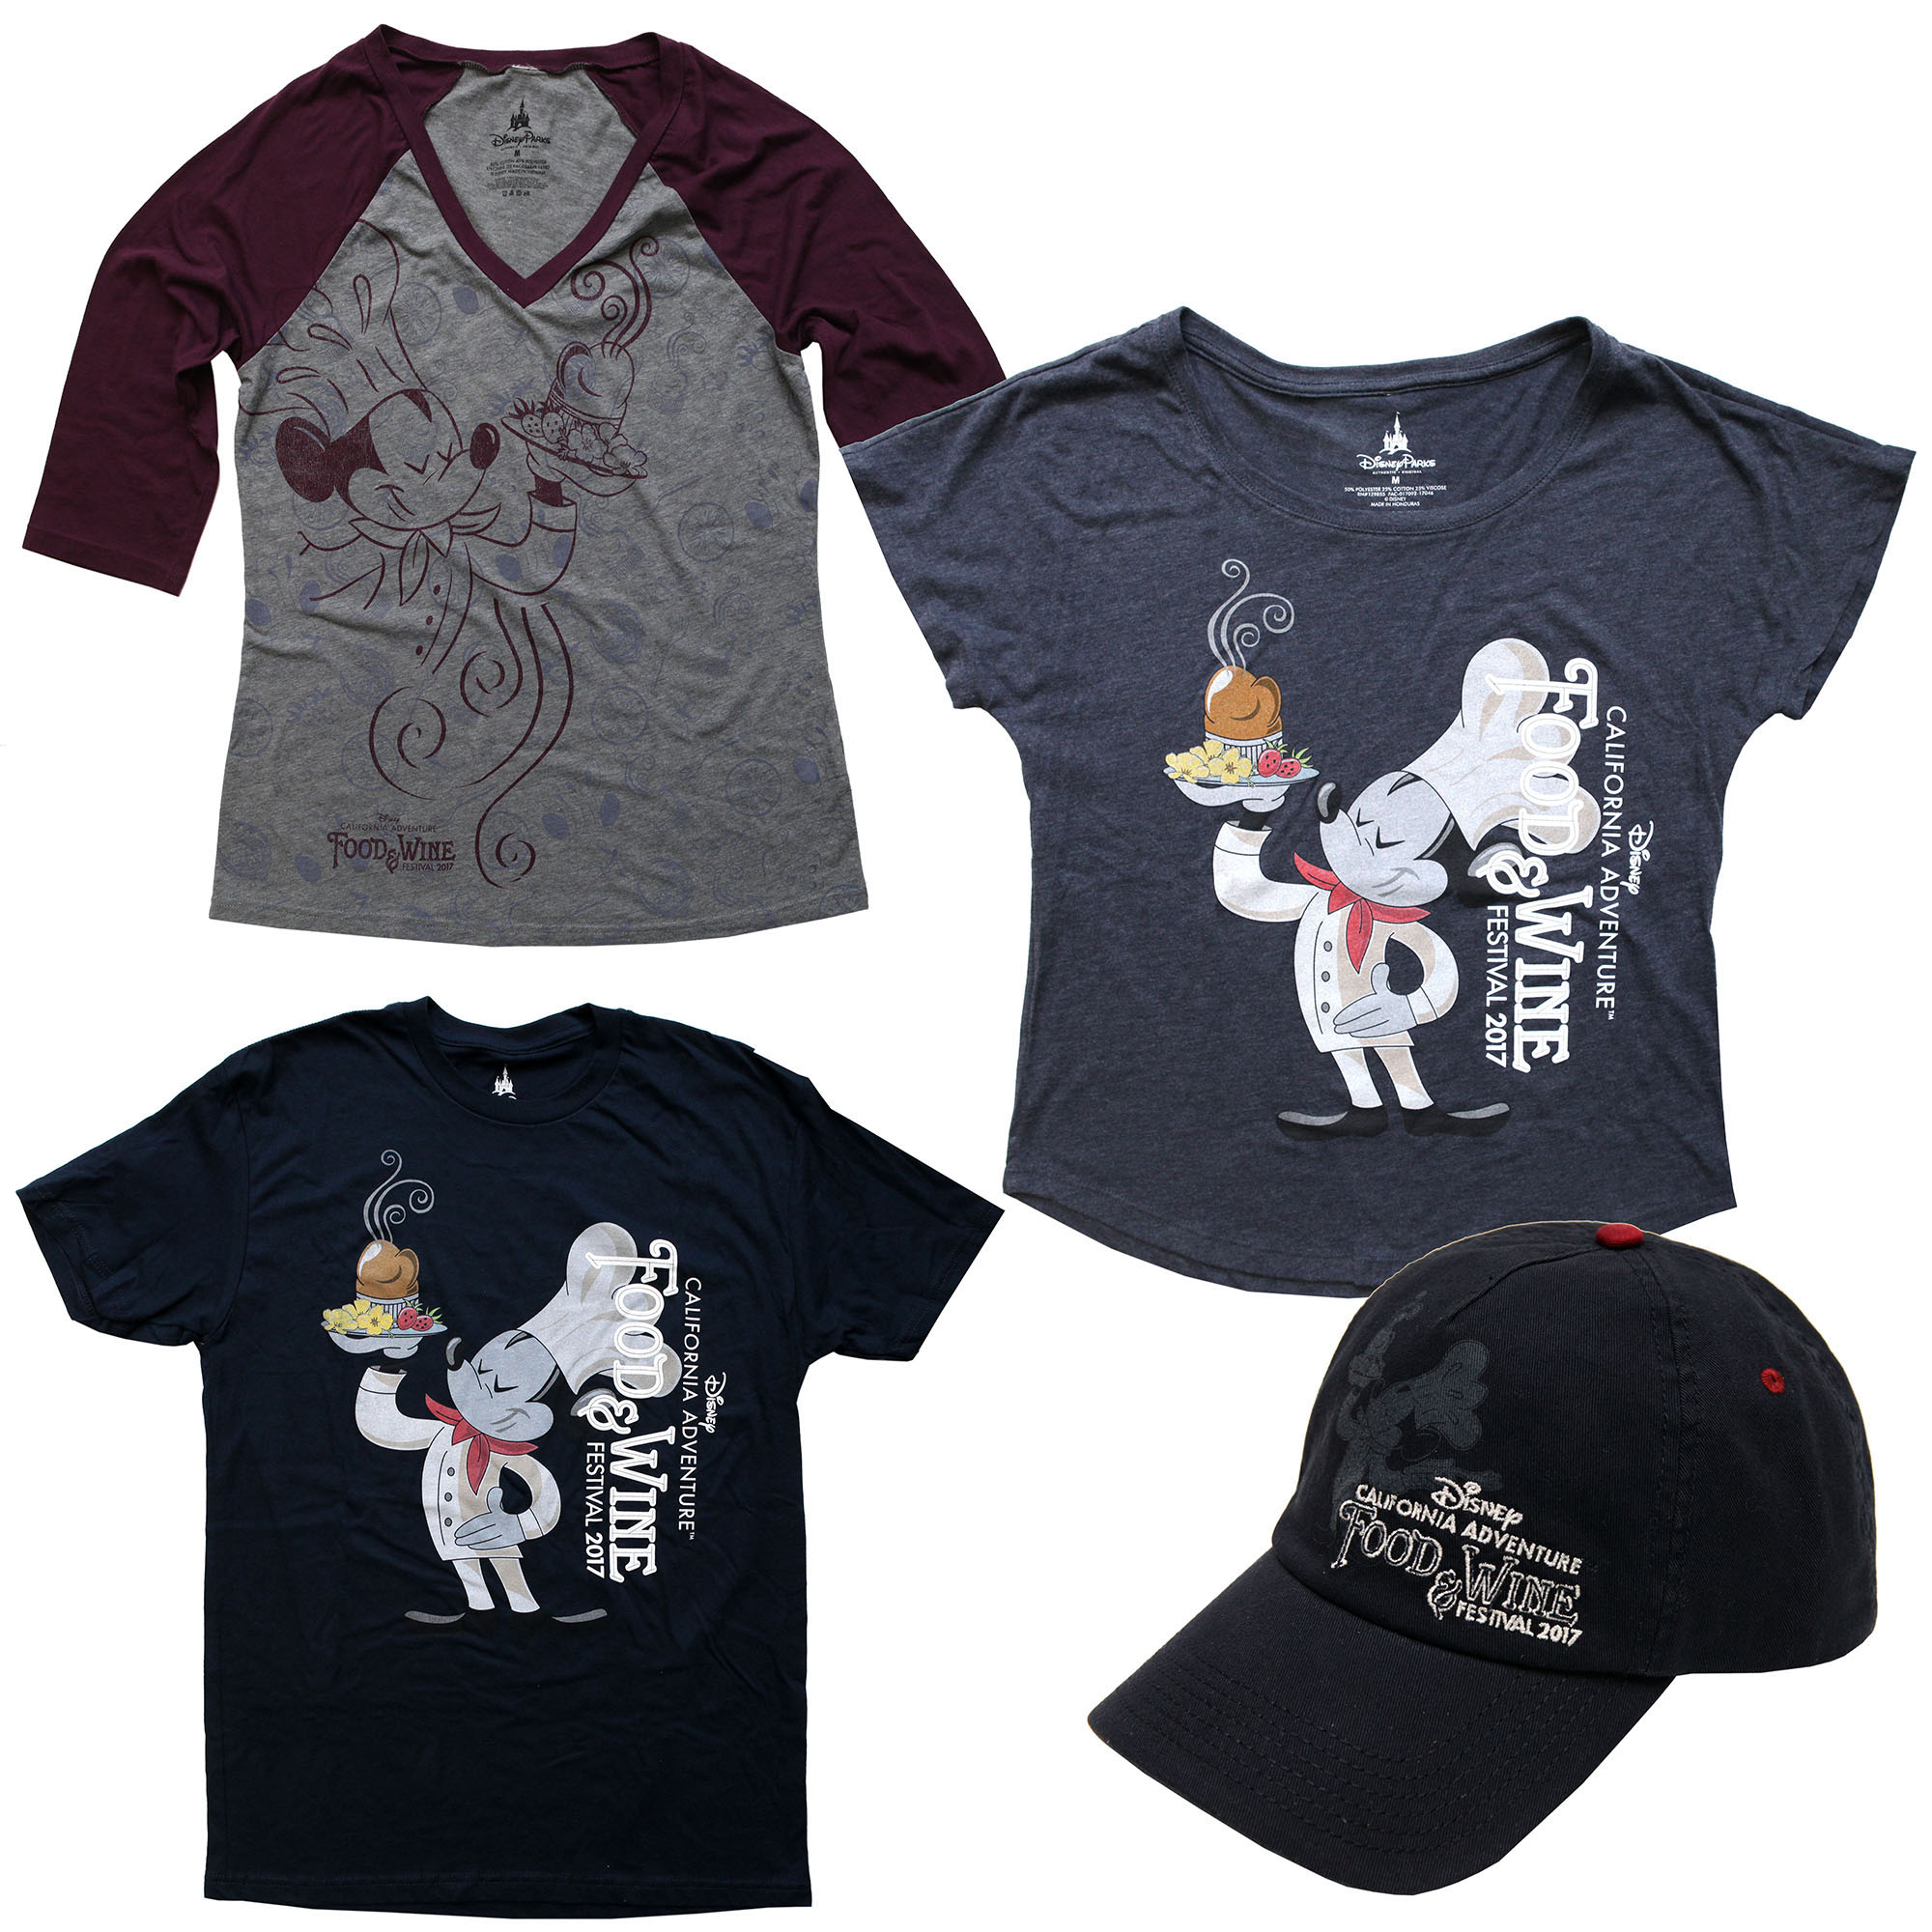 Inside Scoop on 2017 Disney California Adventure Food & Wine Festival Merchandise